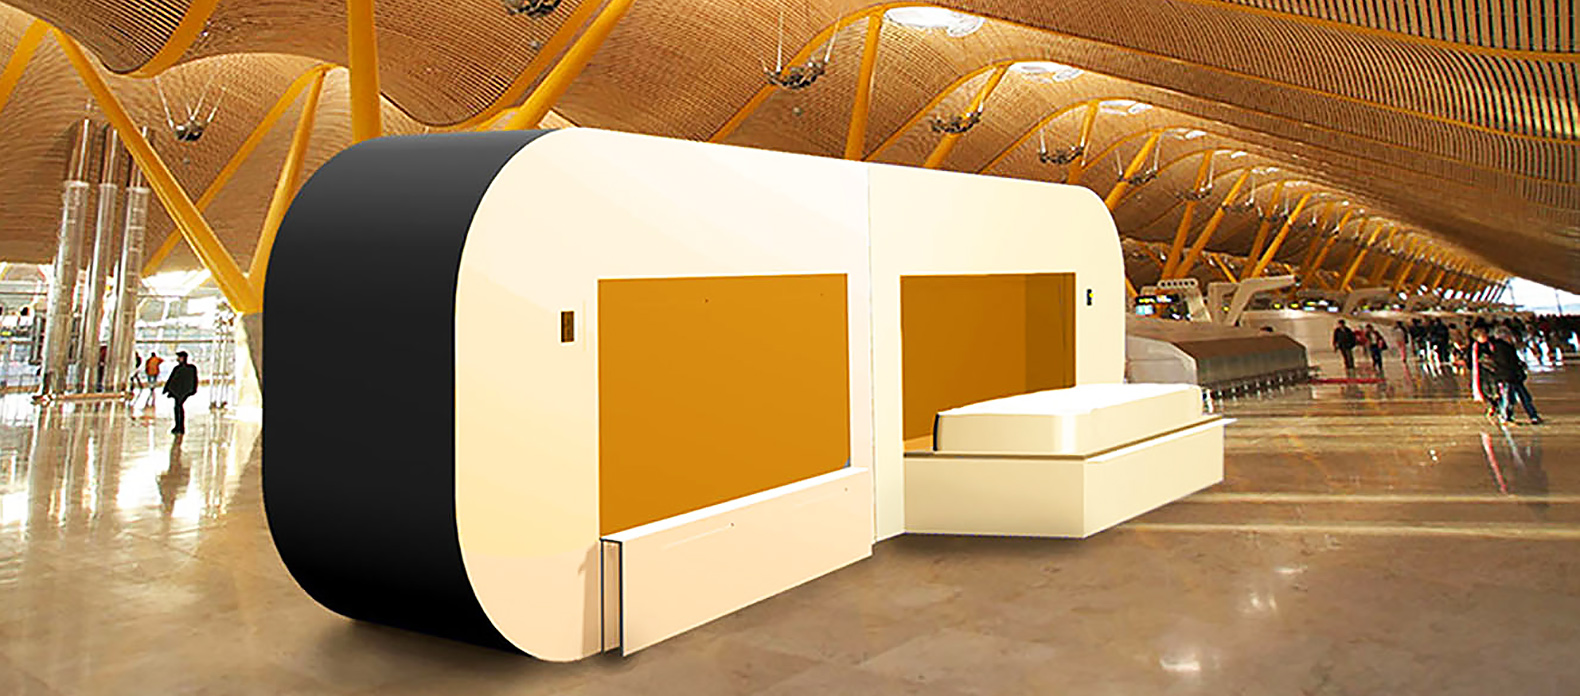 Comfy aDream pods let you take a nap during long airport layovers